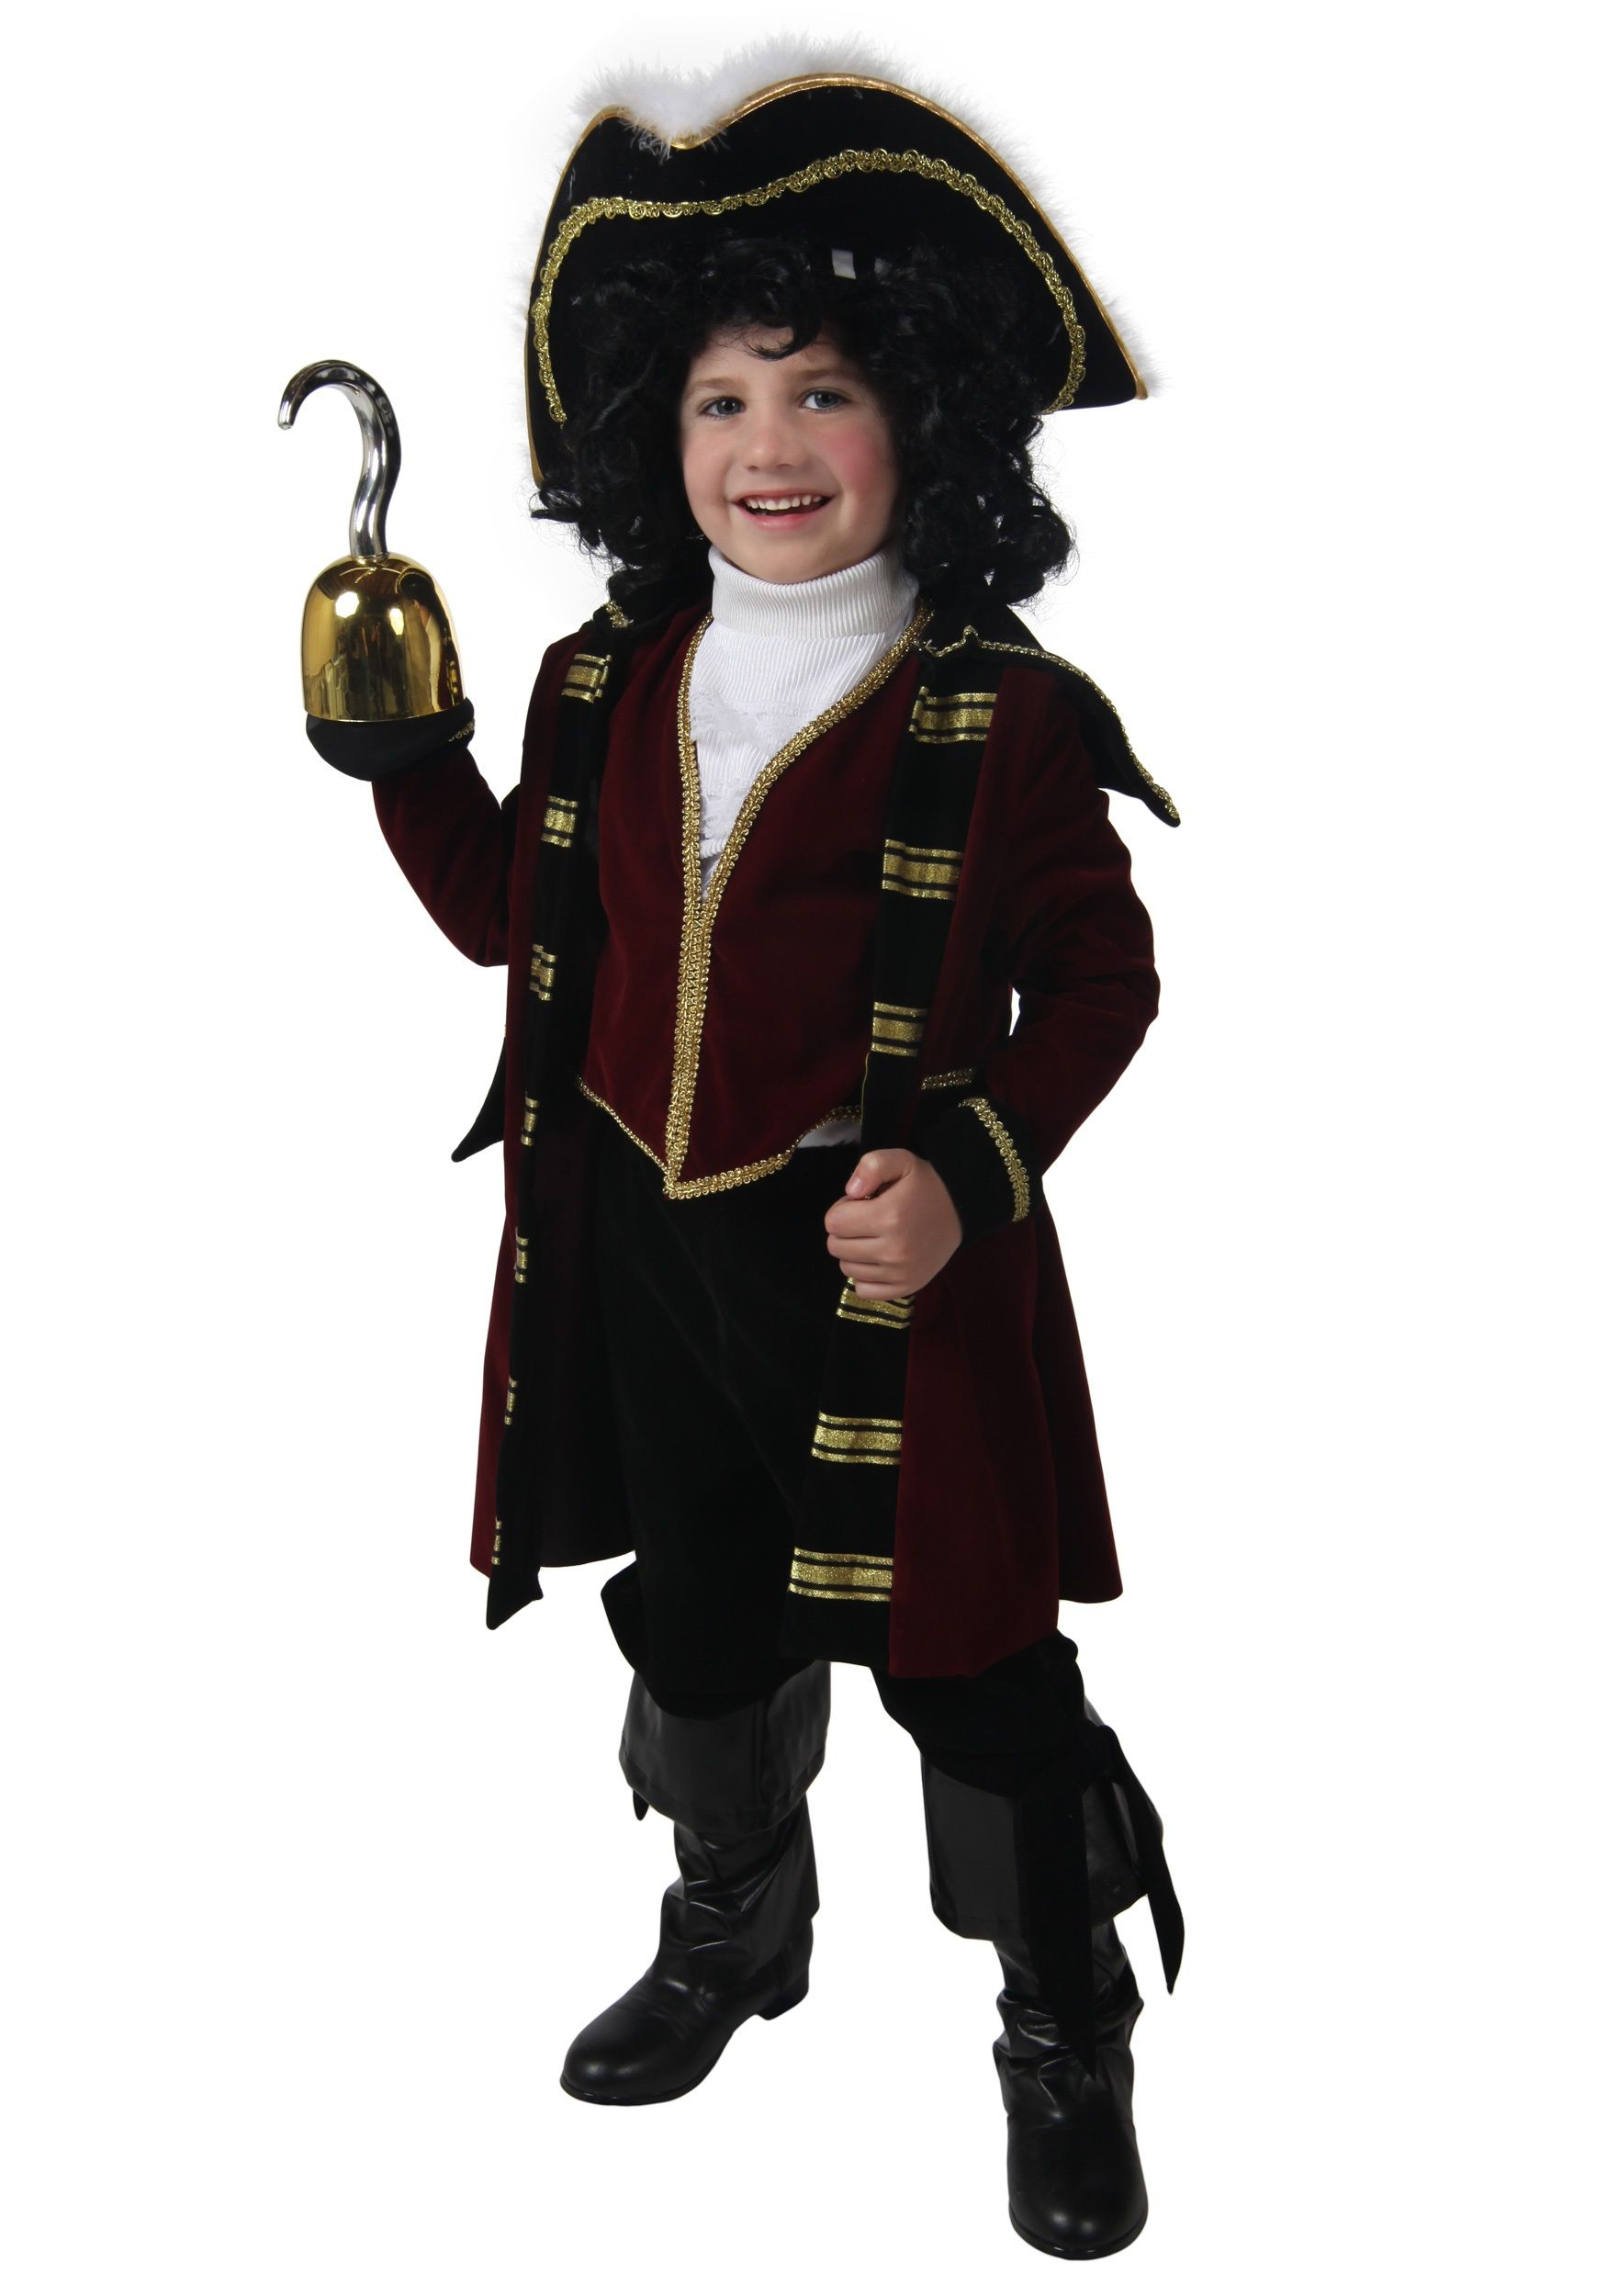 Disney Store Captain Hook Pirate from Peter Pan Costume Suit Toddler Youth Boys